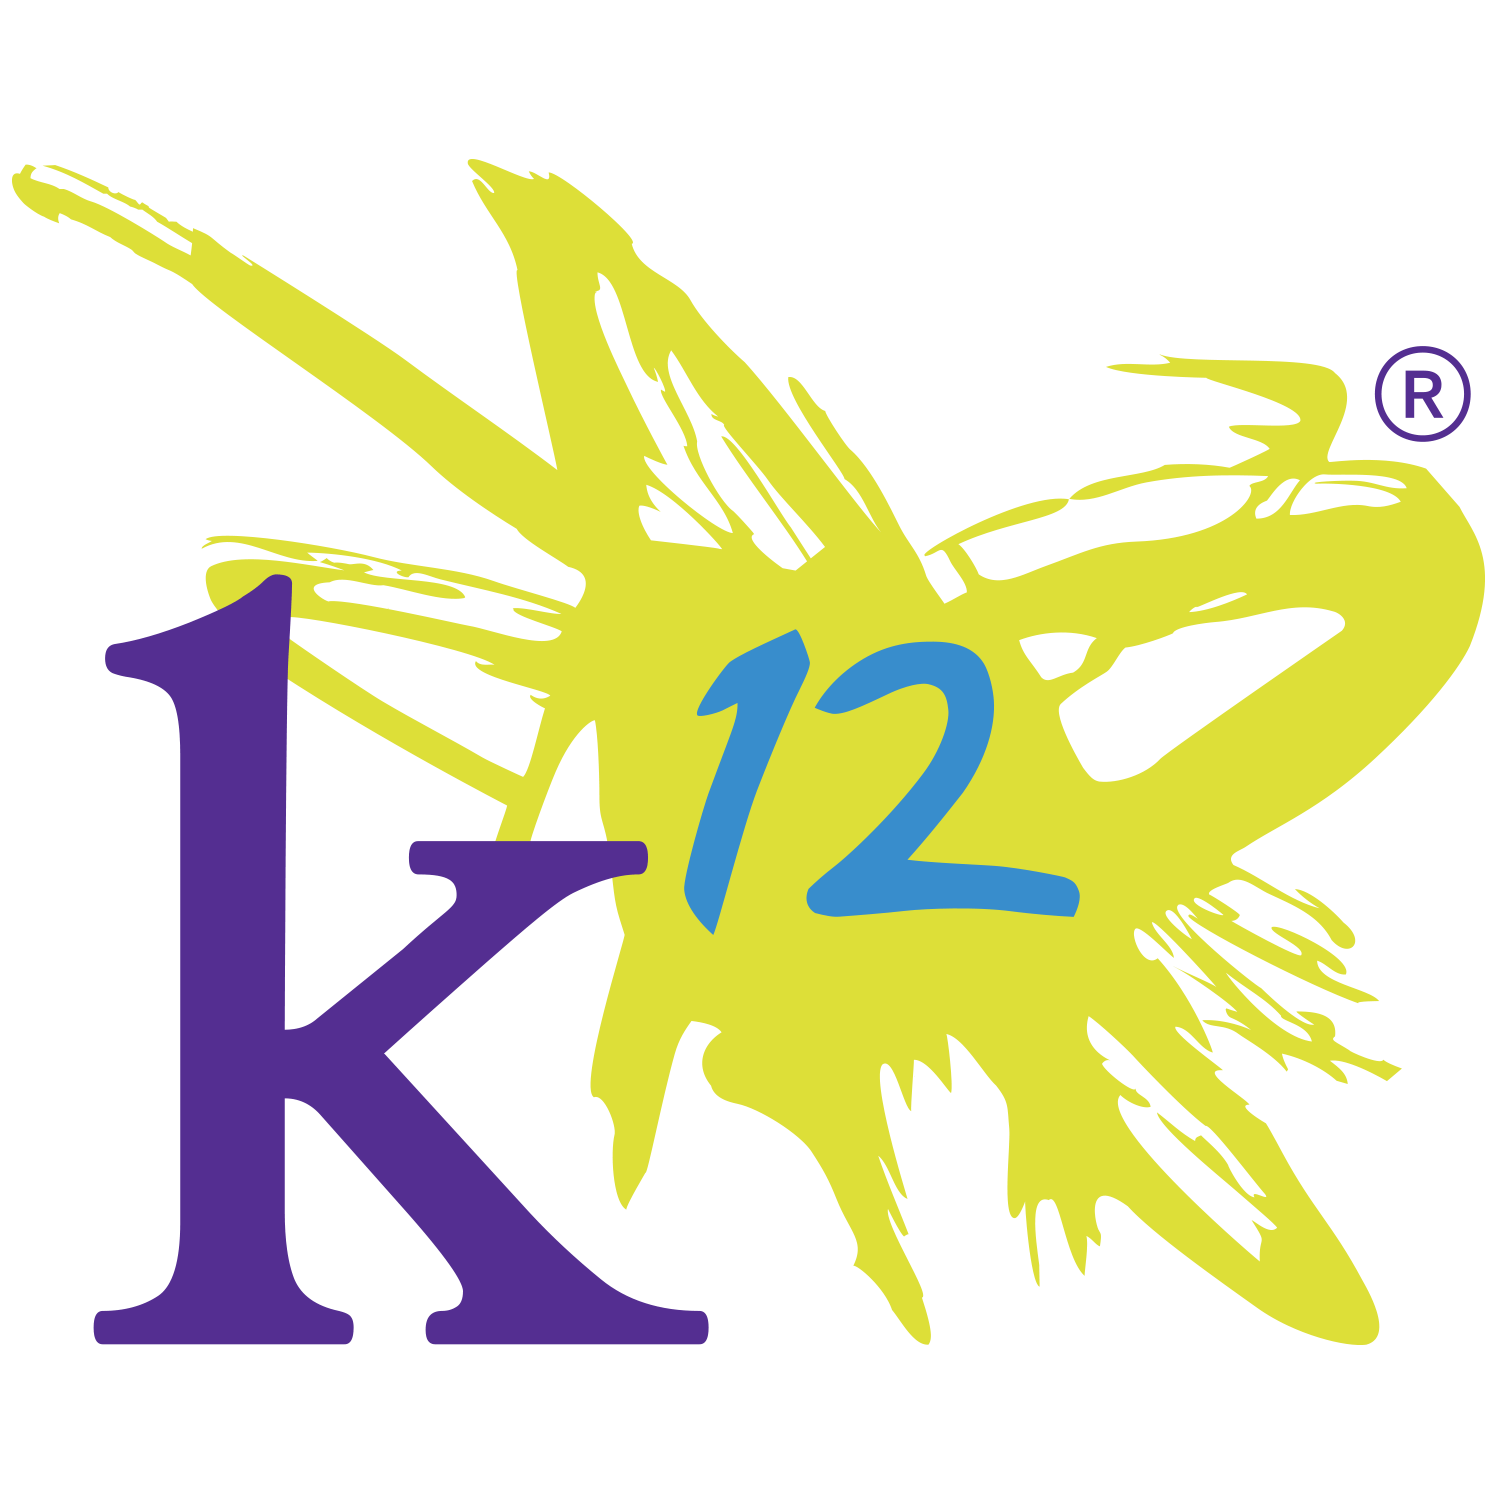 K12 Significantly Undervalued With 97% Upside  K12 Inc (nyselrn)  Seeking Alpha